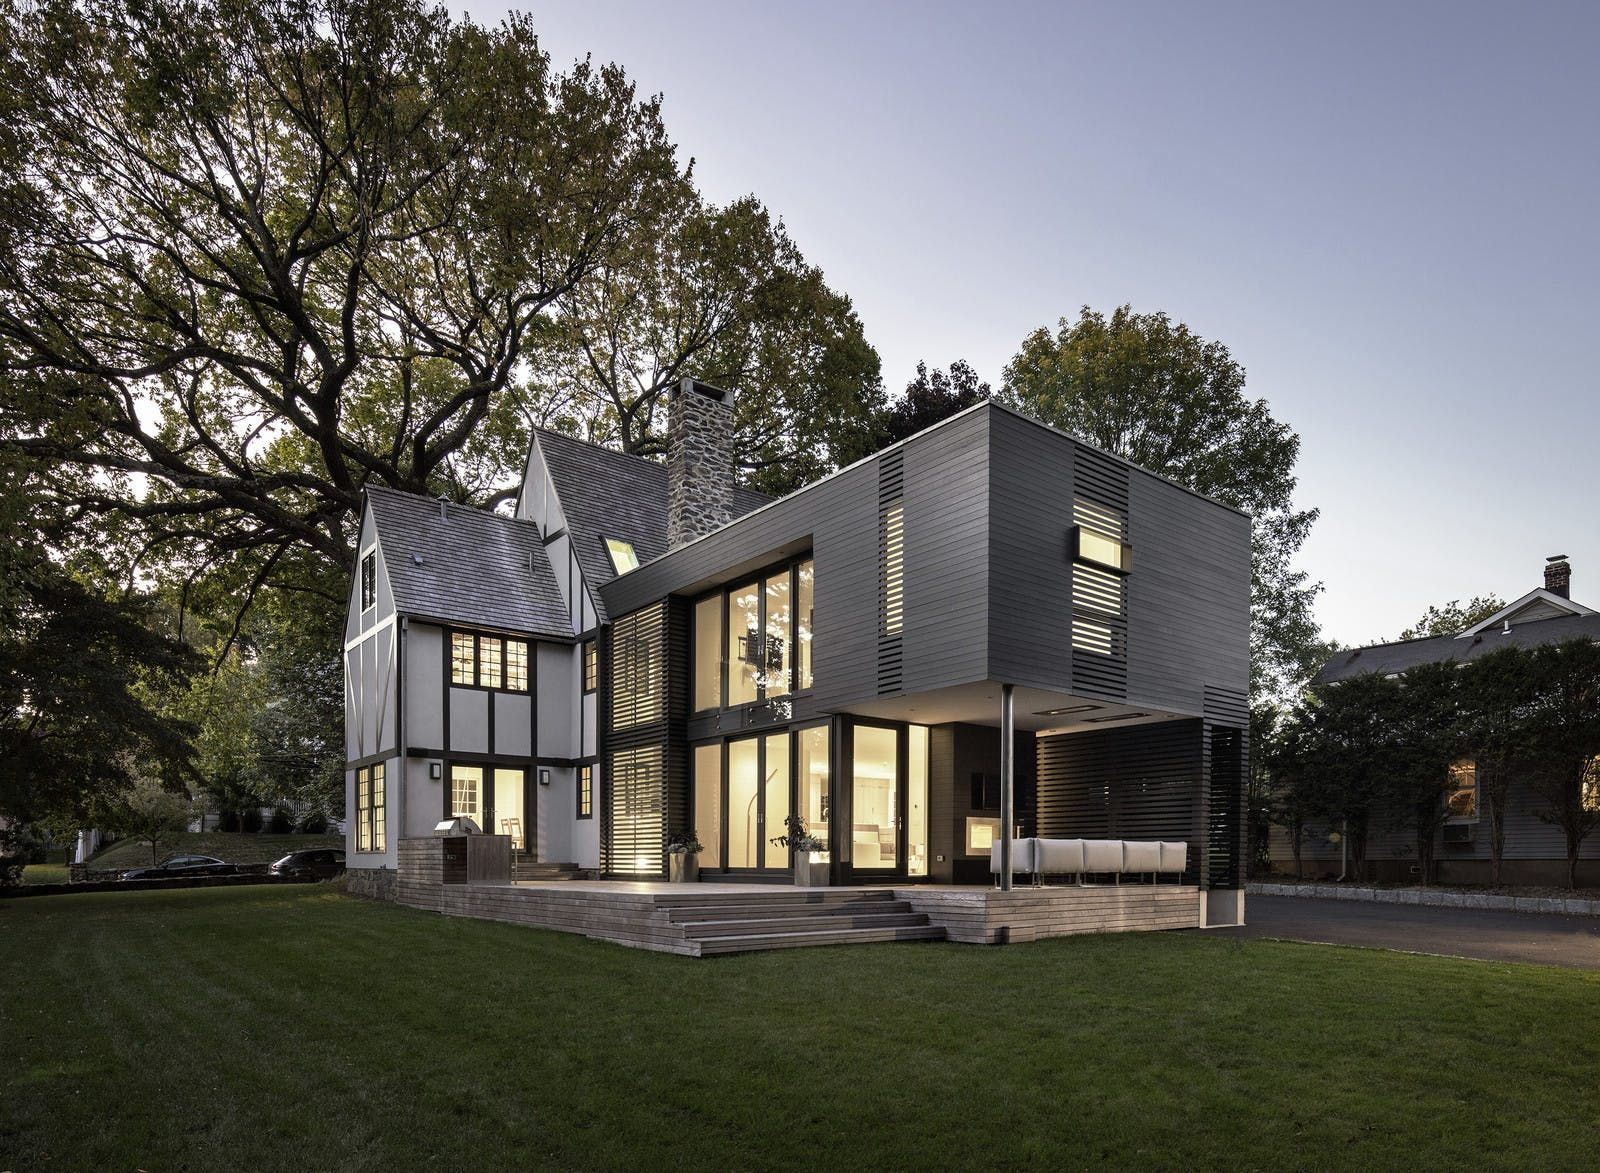 5 traditional homes with super modern additions home pinterestbusiness in the front, party in the back 5 traditional homes that got super modern additions \u2014 dwell